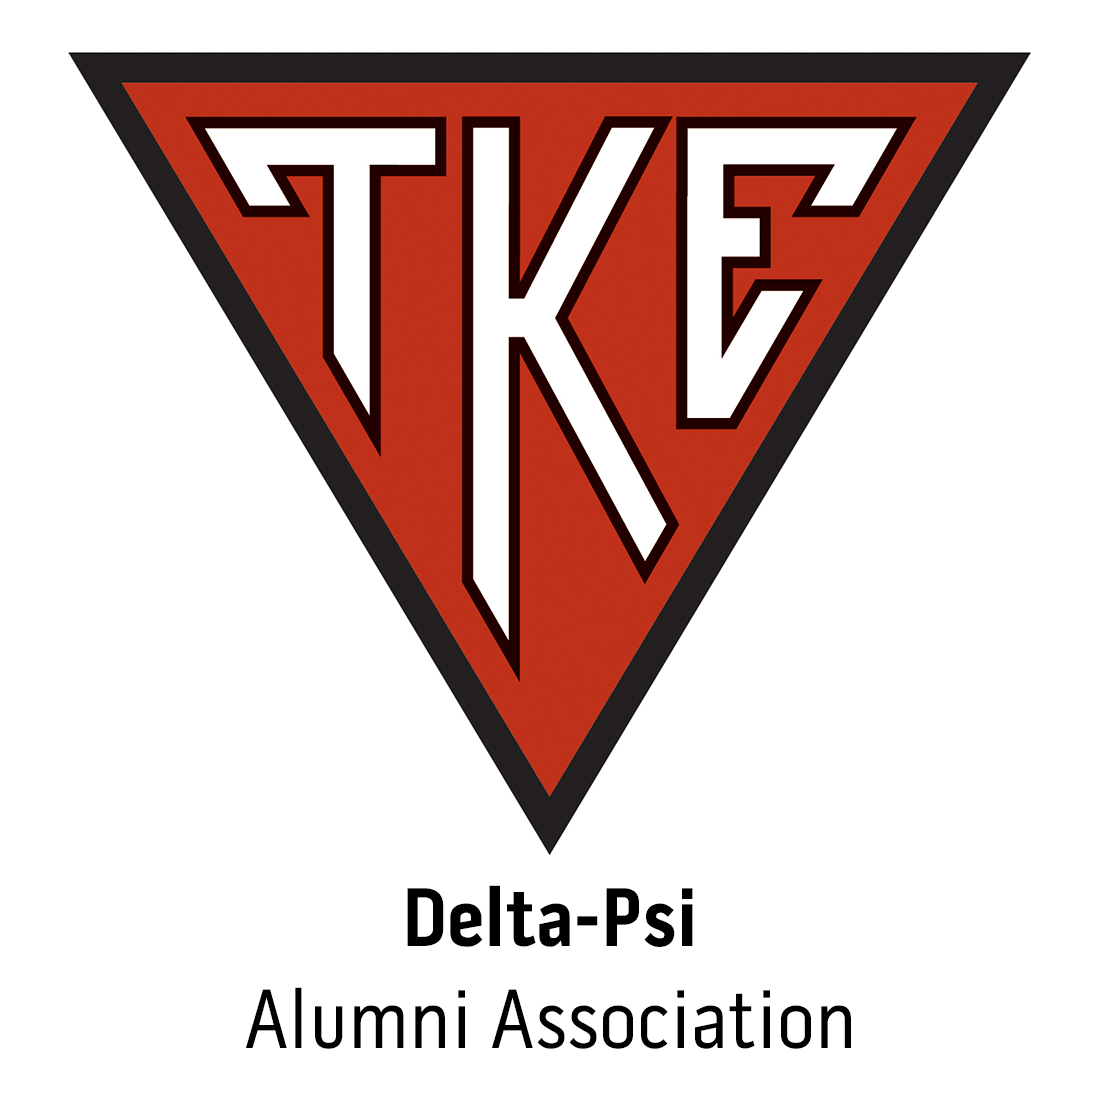 Delta-Psi Alumni Association Alumni at North Dakota State University